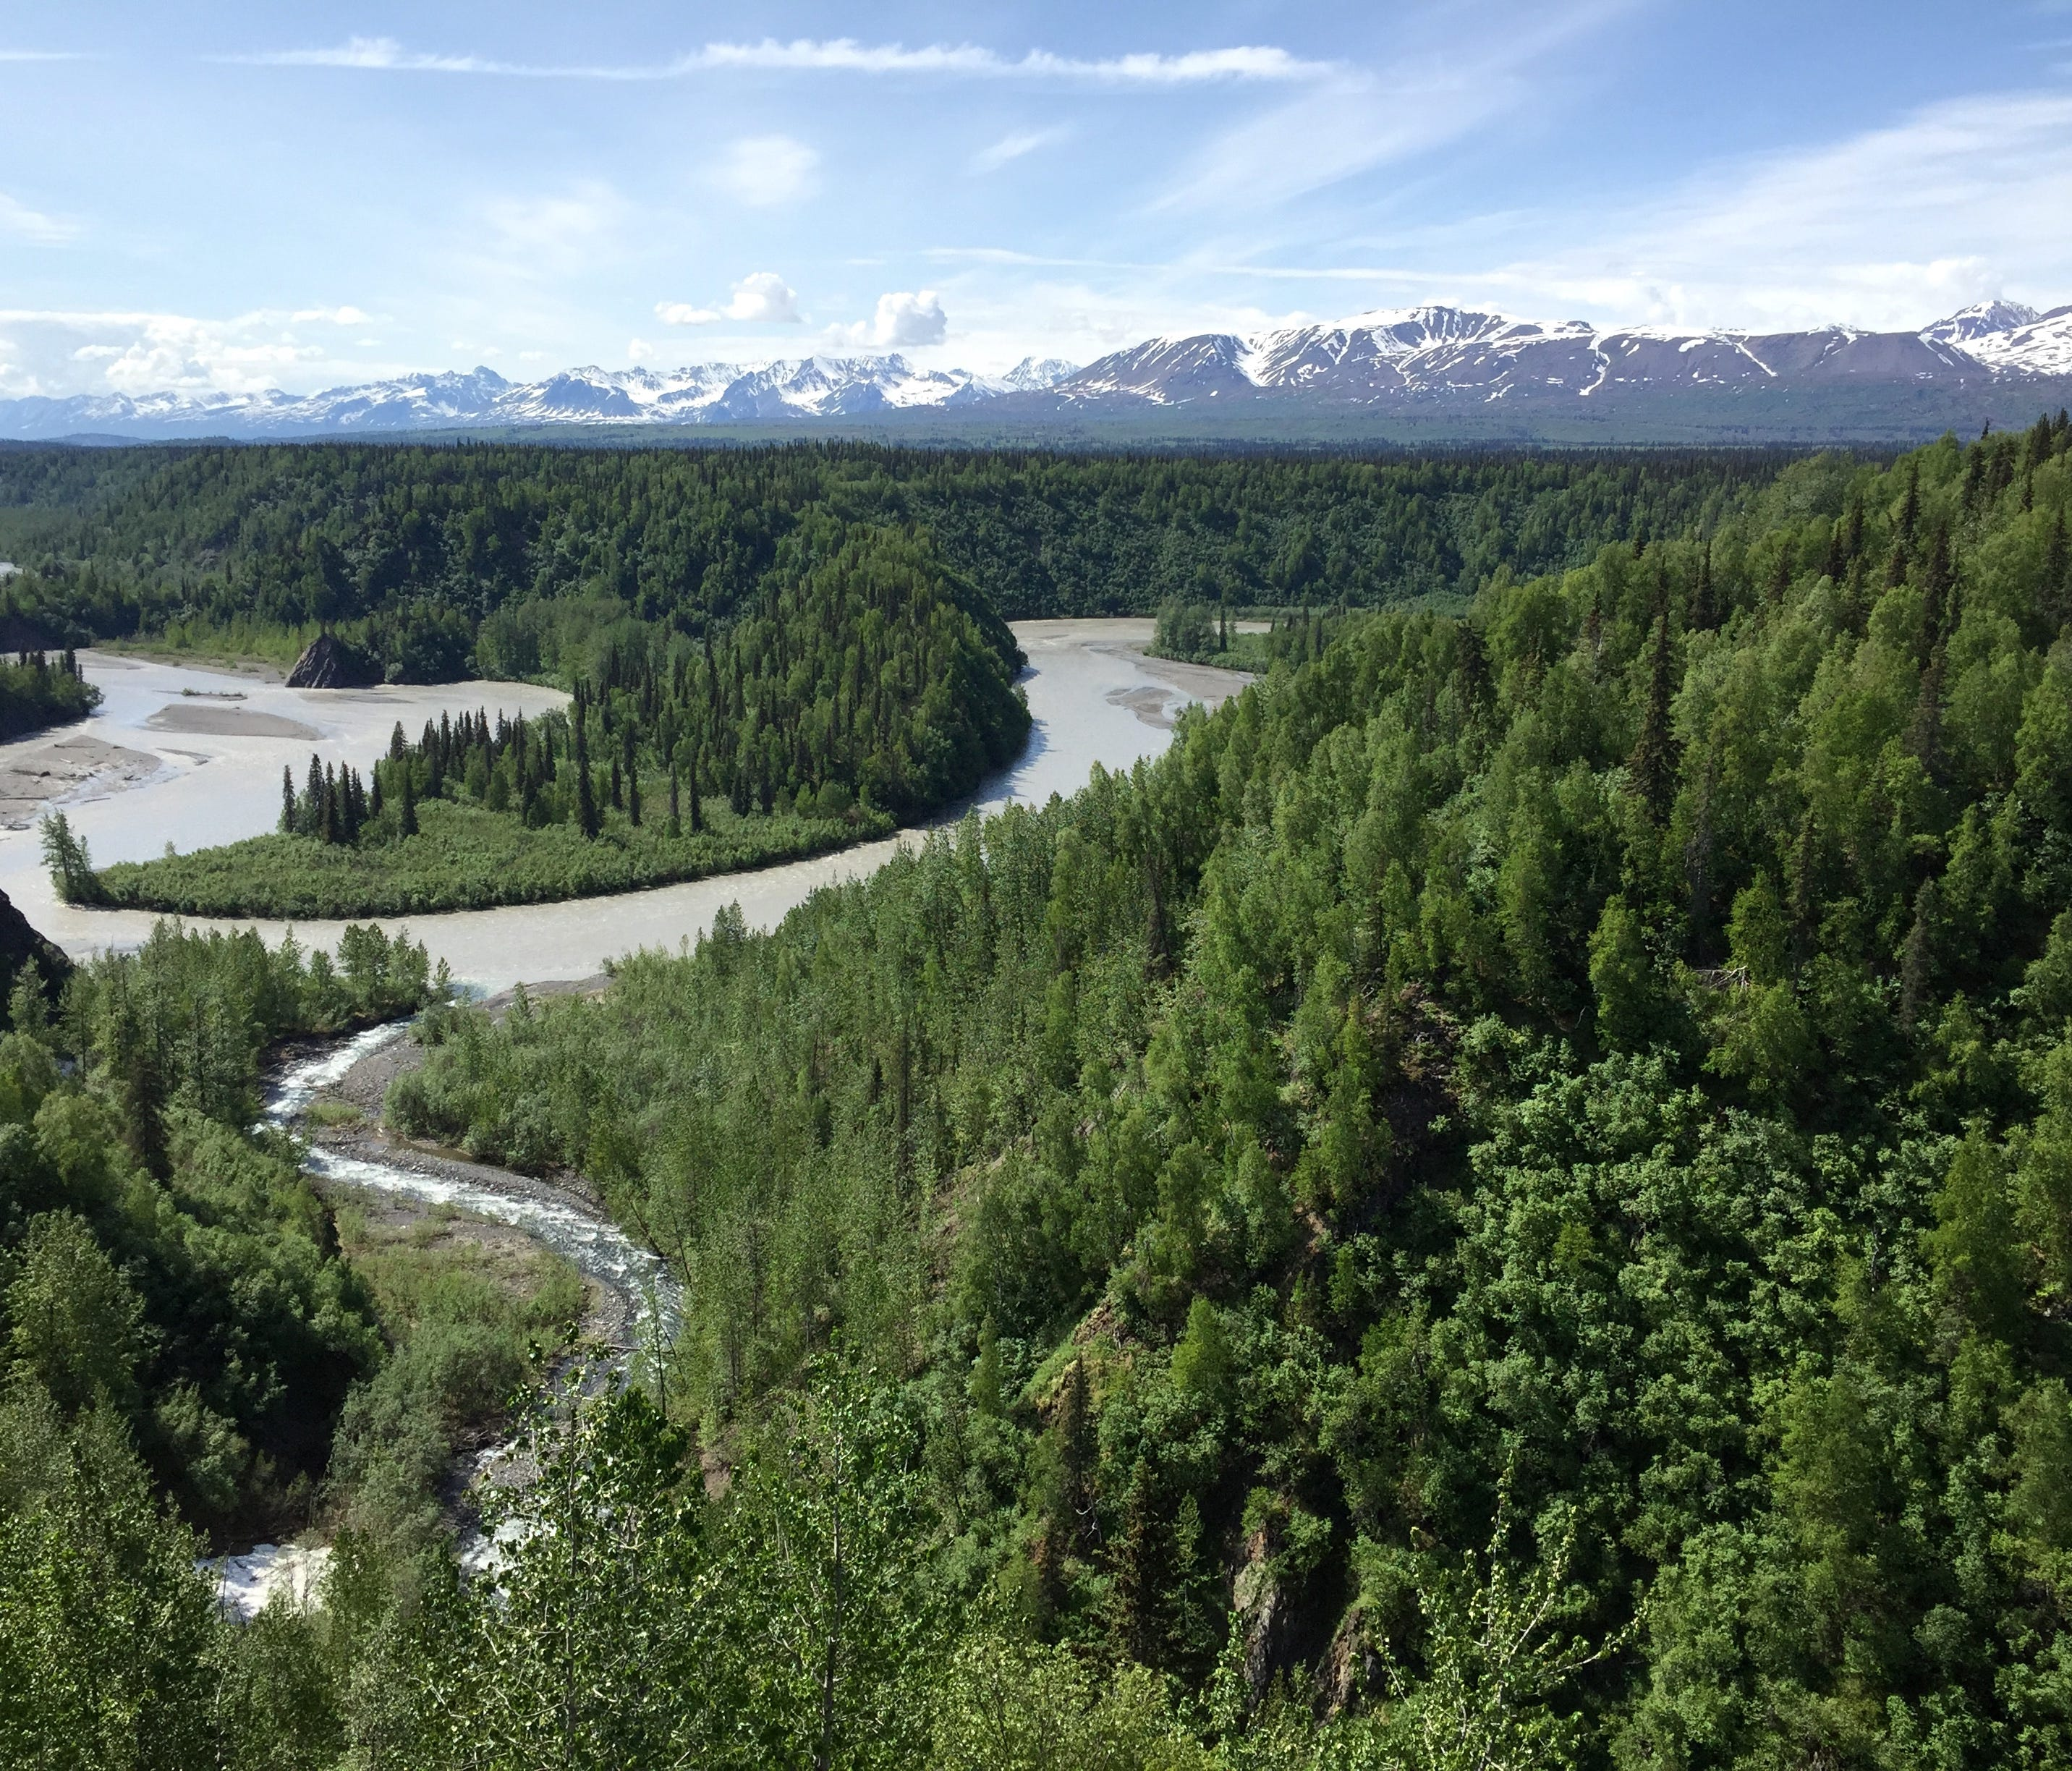 Views of the Alaskan landscape from the train on the way from Anchorage to Denali National Park. Credit